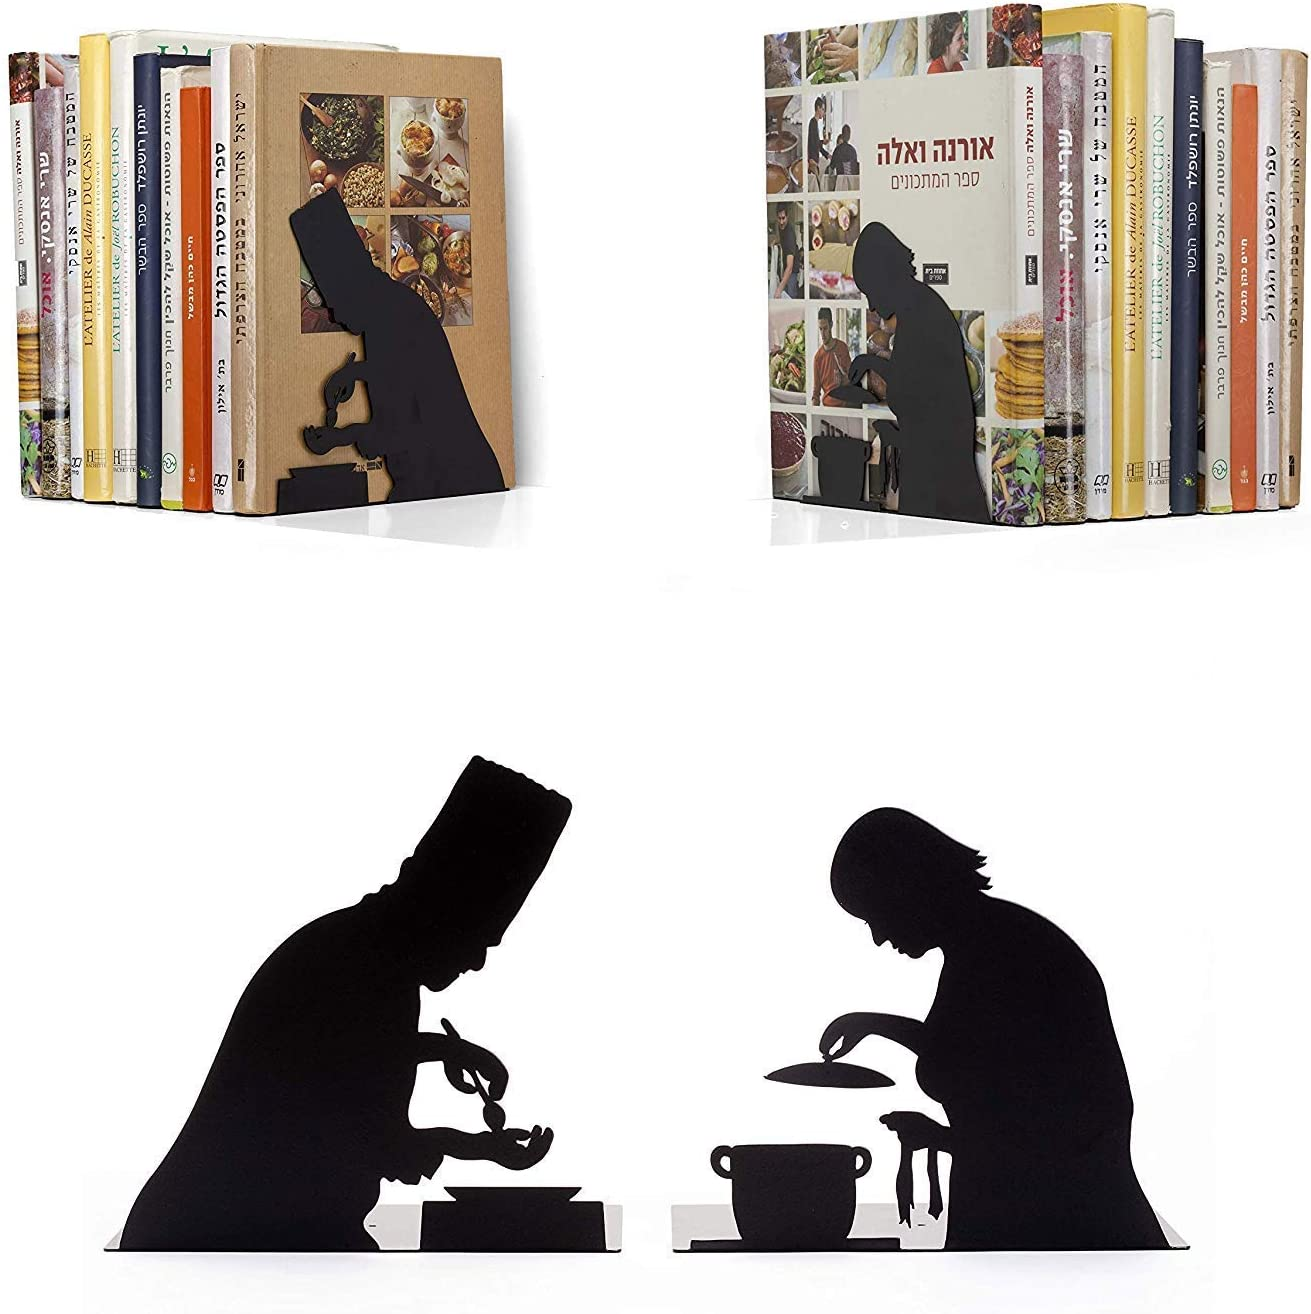 Artori Design by The Book Book Ends - for Cook Books - Decorative Black Metal Book End - Kitchen Bookends - Cooking Books Book Stoppers - Gifts for Chefs – Cookery Books Book Holder